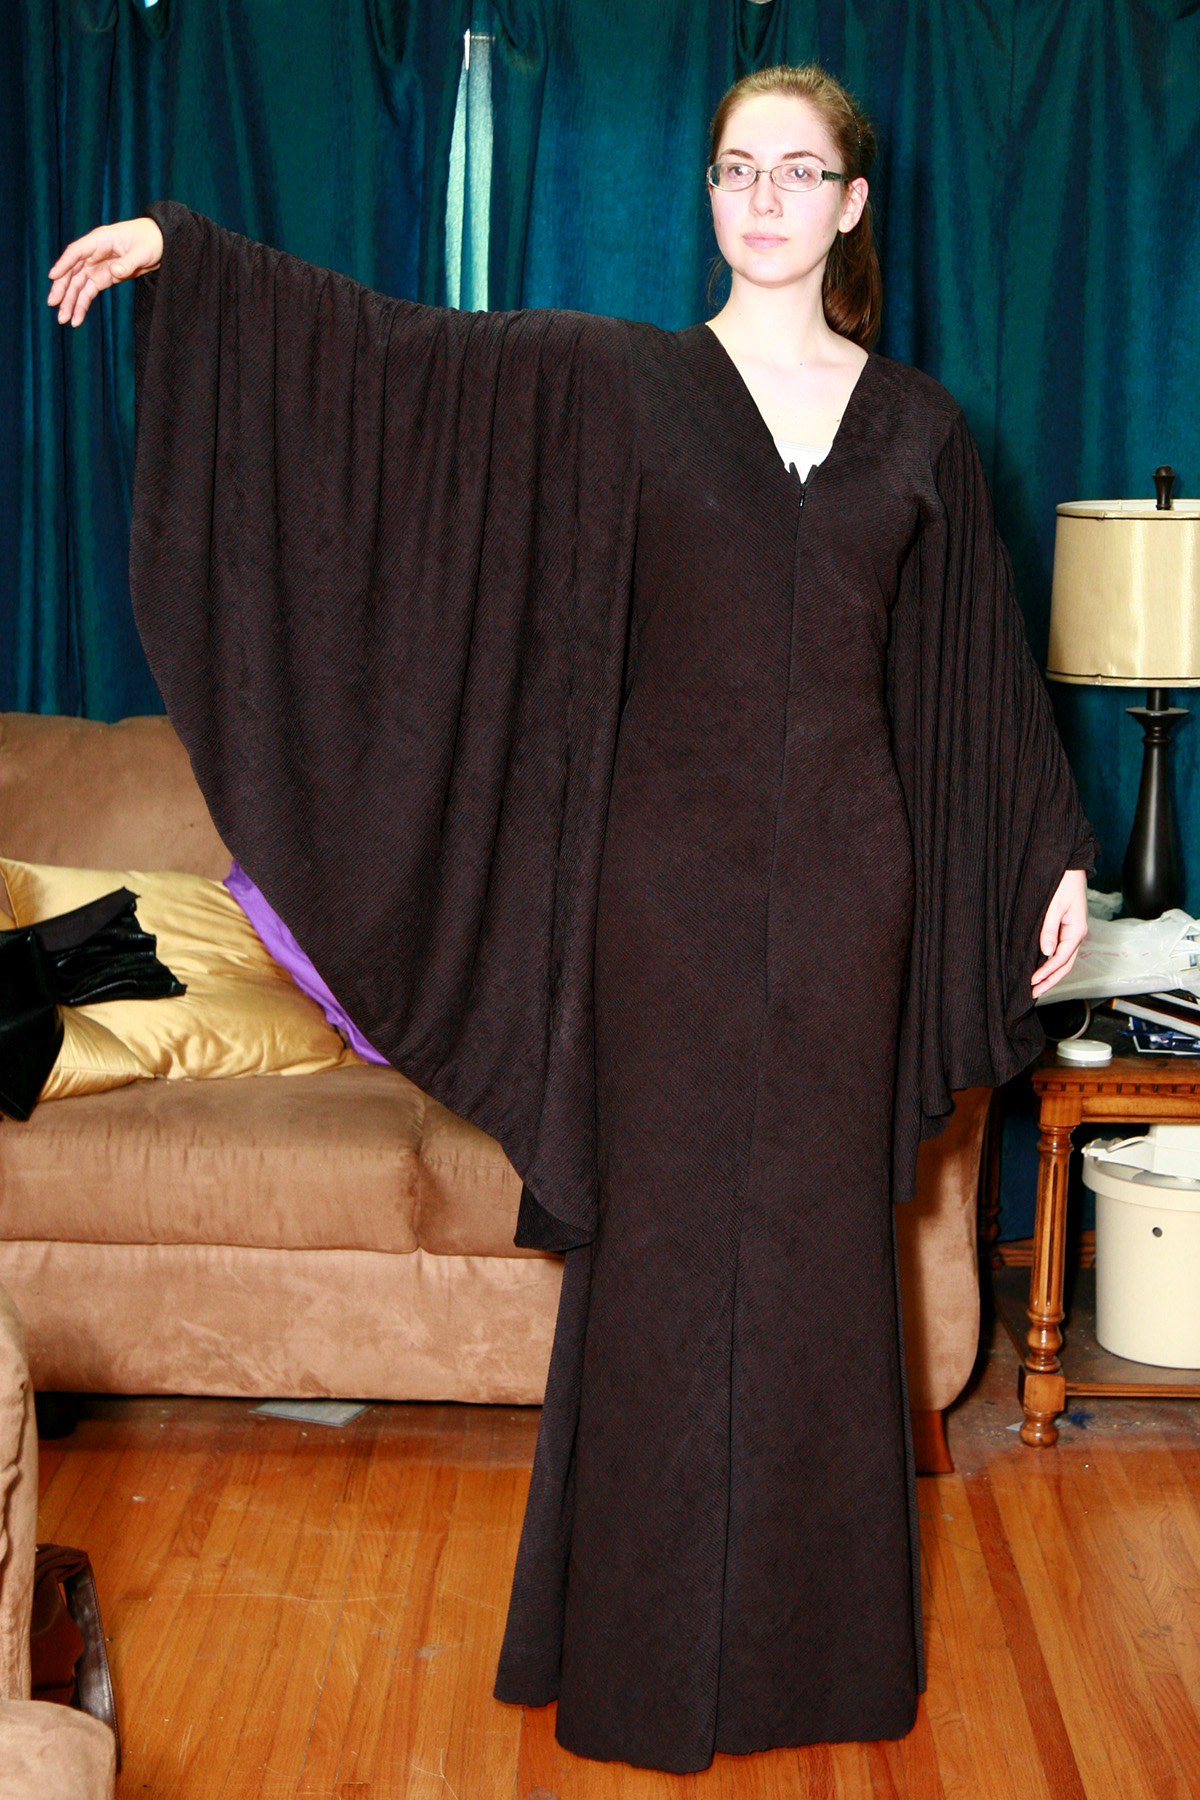 A cosplayer wearing Maleficent's Gown, one arm extending out to the side to show off the batwing sleeve.